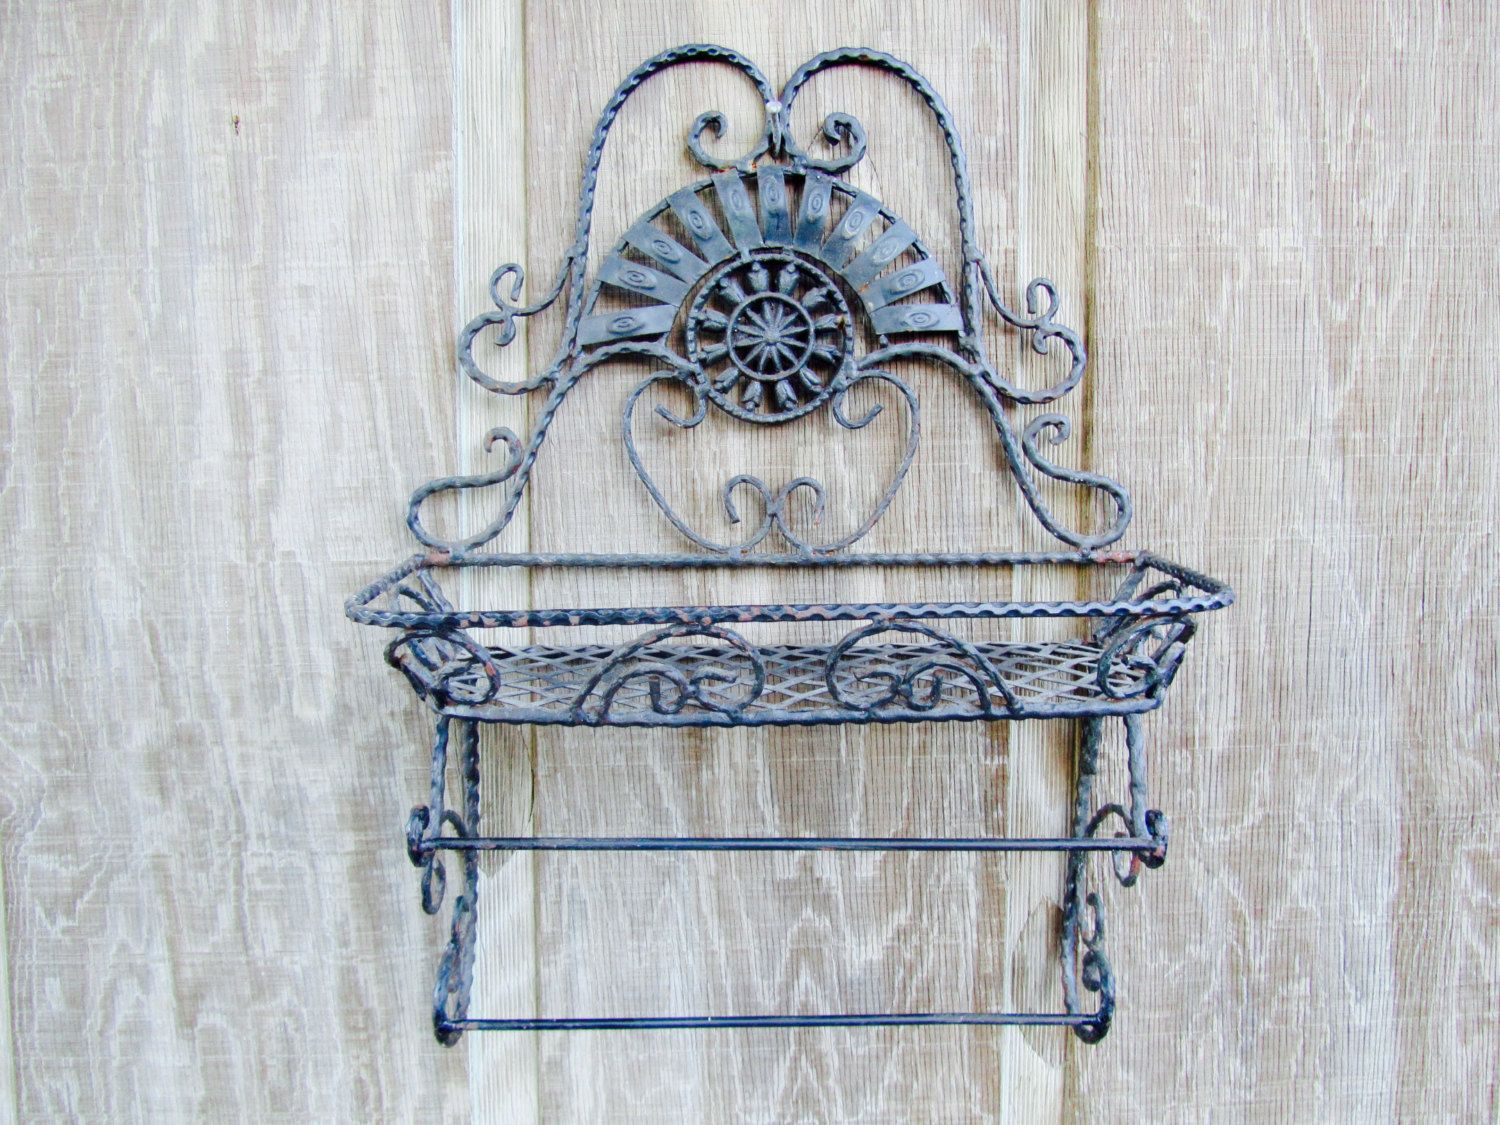 Vintage Shelf, Metal Shelf,wrought Iron Shelf,shabby Chic